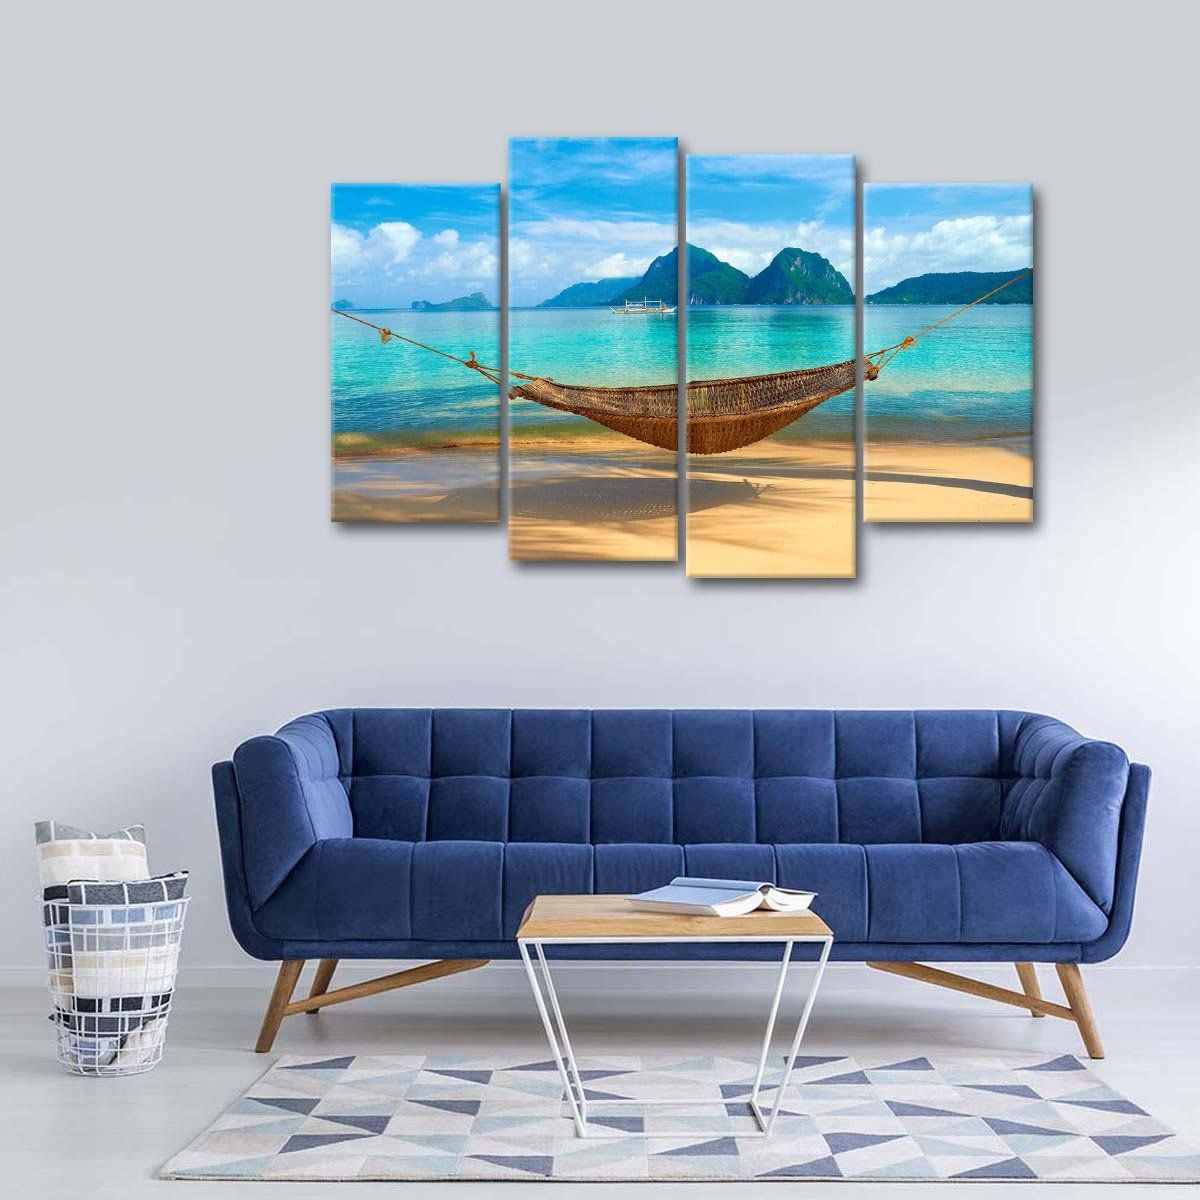 Beach Relaxation Multi Panel Canvas Wall Art Products In 2019